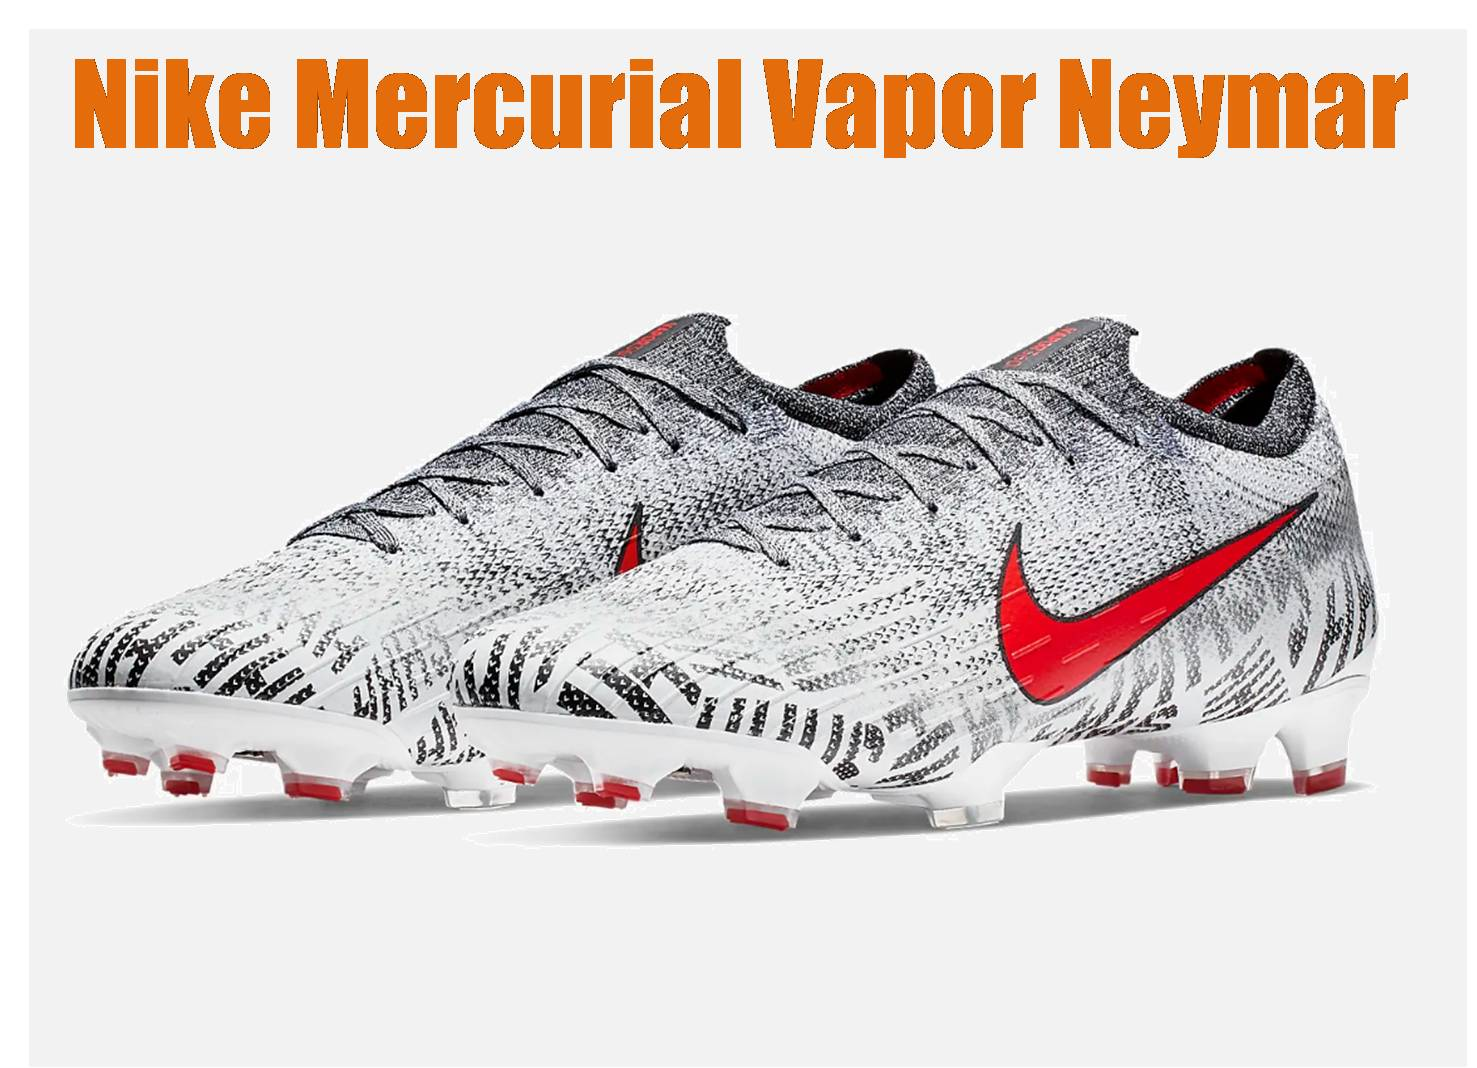 Nike_Mercurial_Vapor_Neymar_football_Shoes_Review